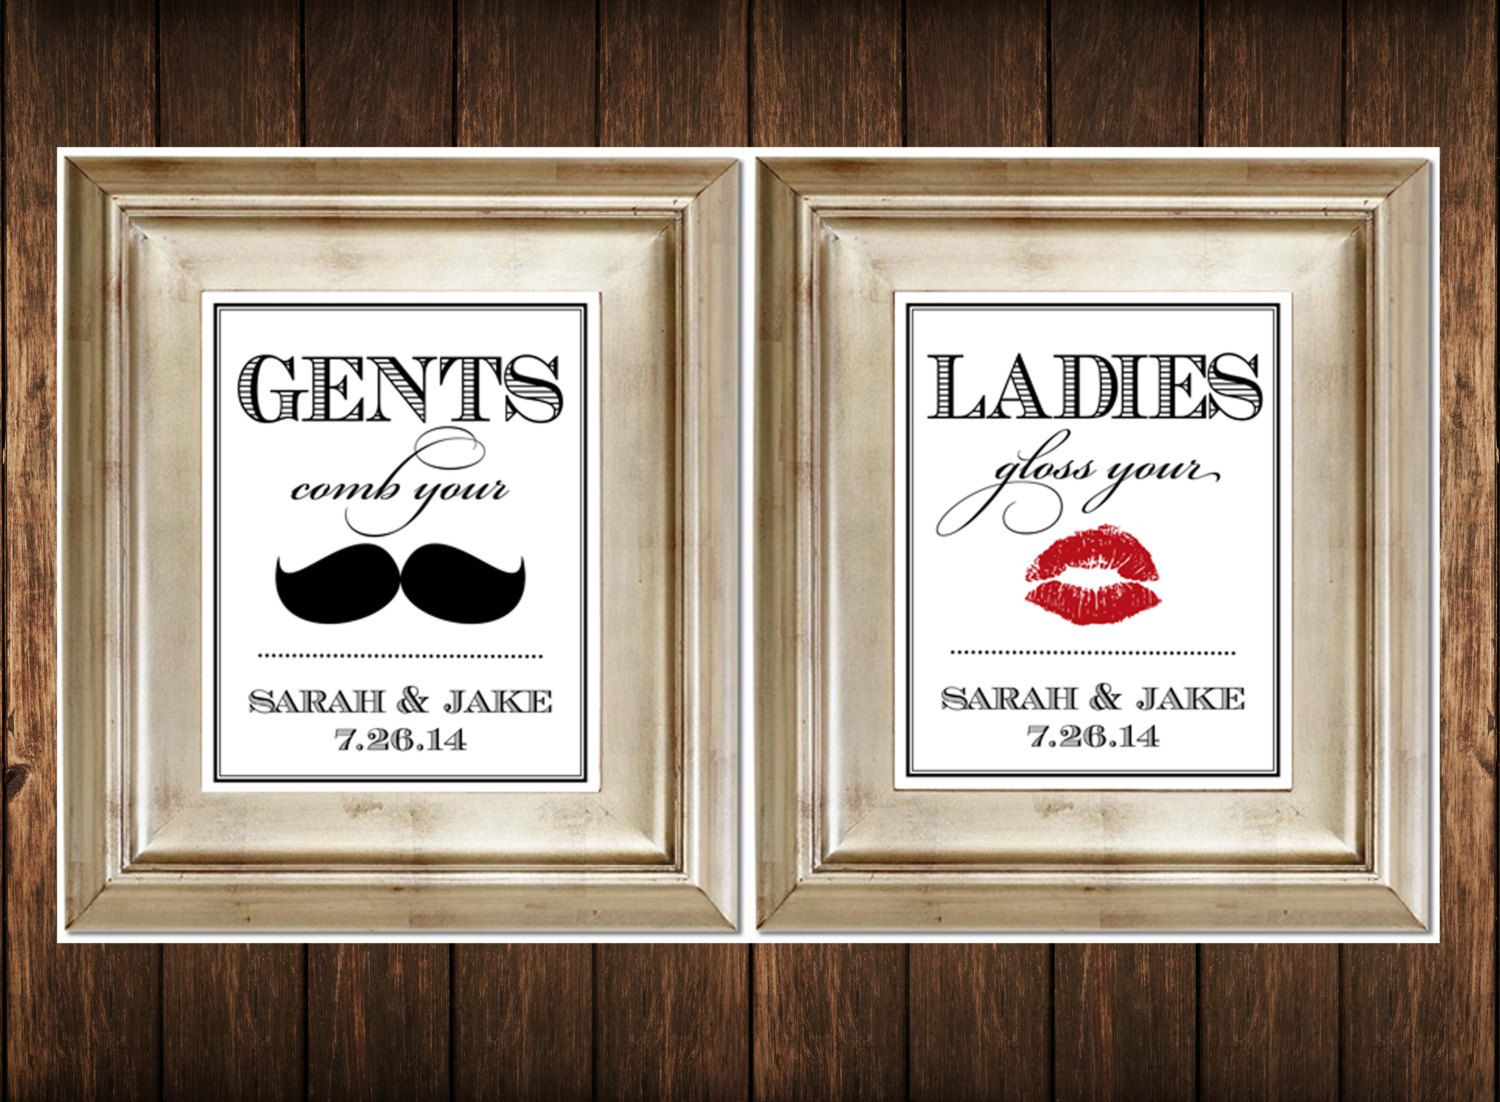 Bathroom Signs Pinterest set of 2 bathroom signs customized ladies &serenitynowstudio